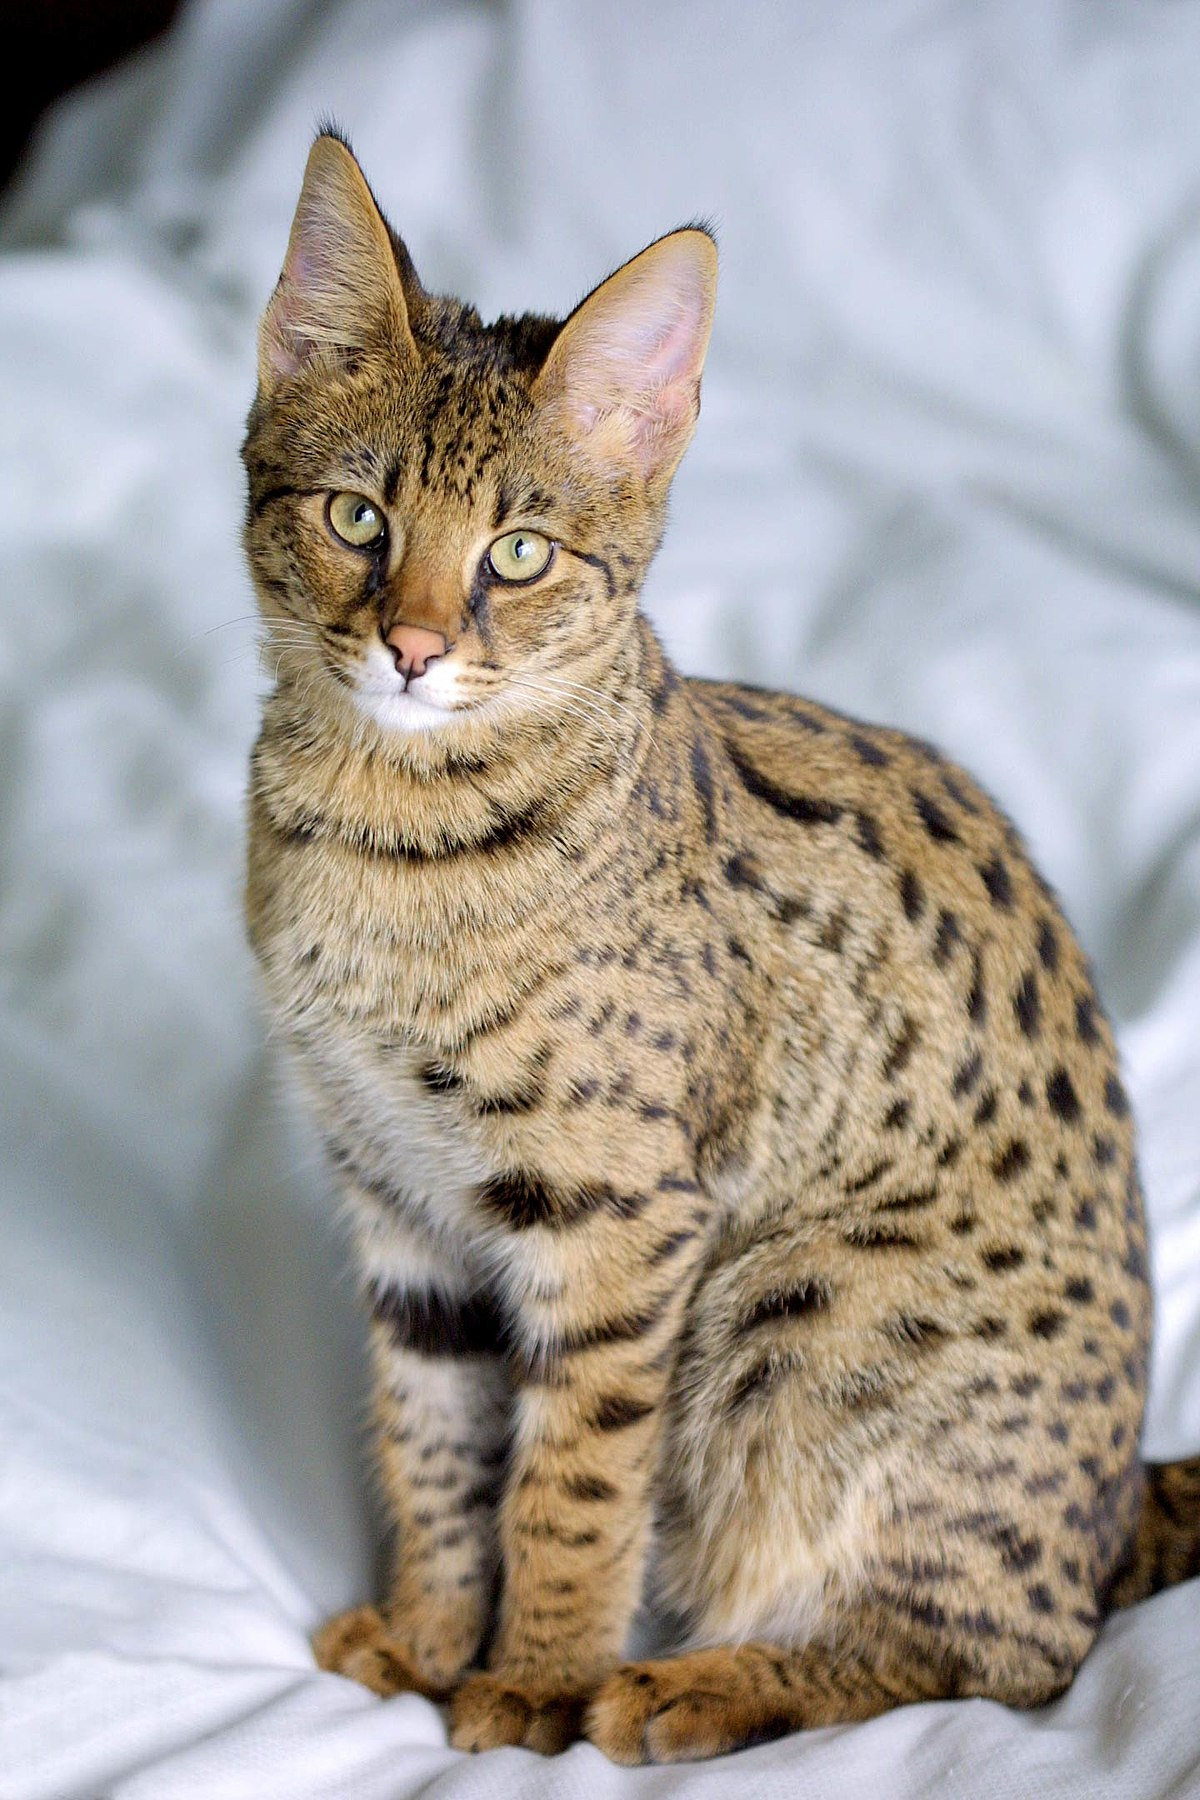 Savannah cat - Wikipedia